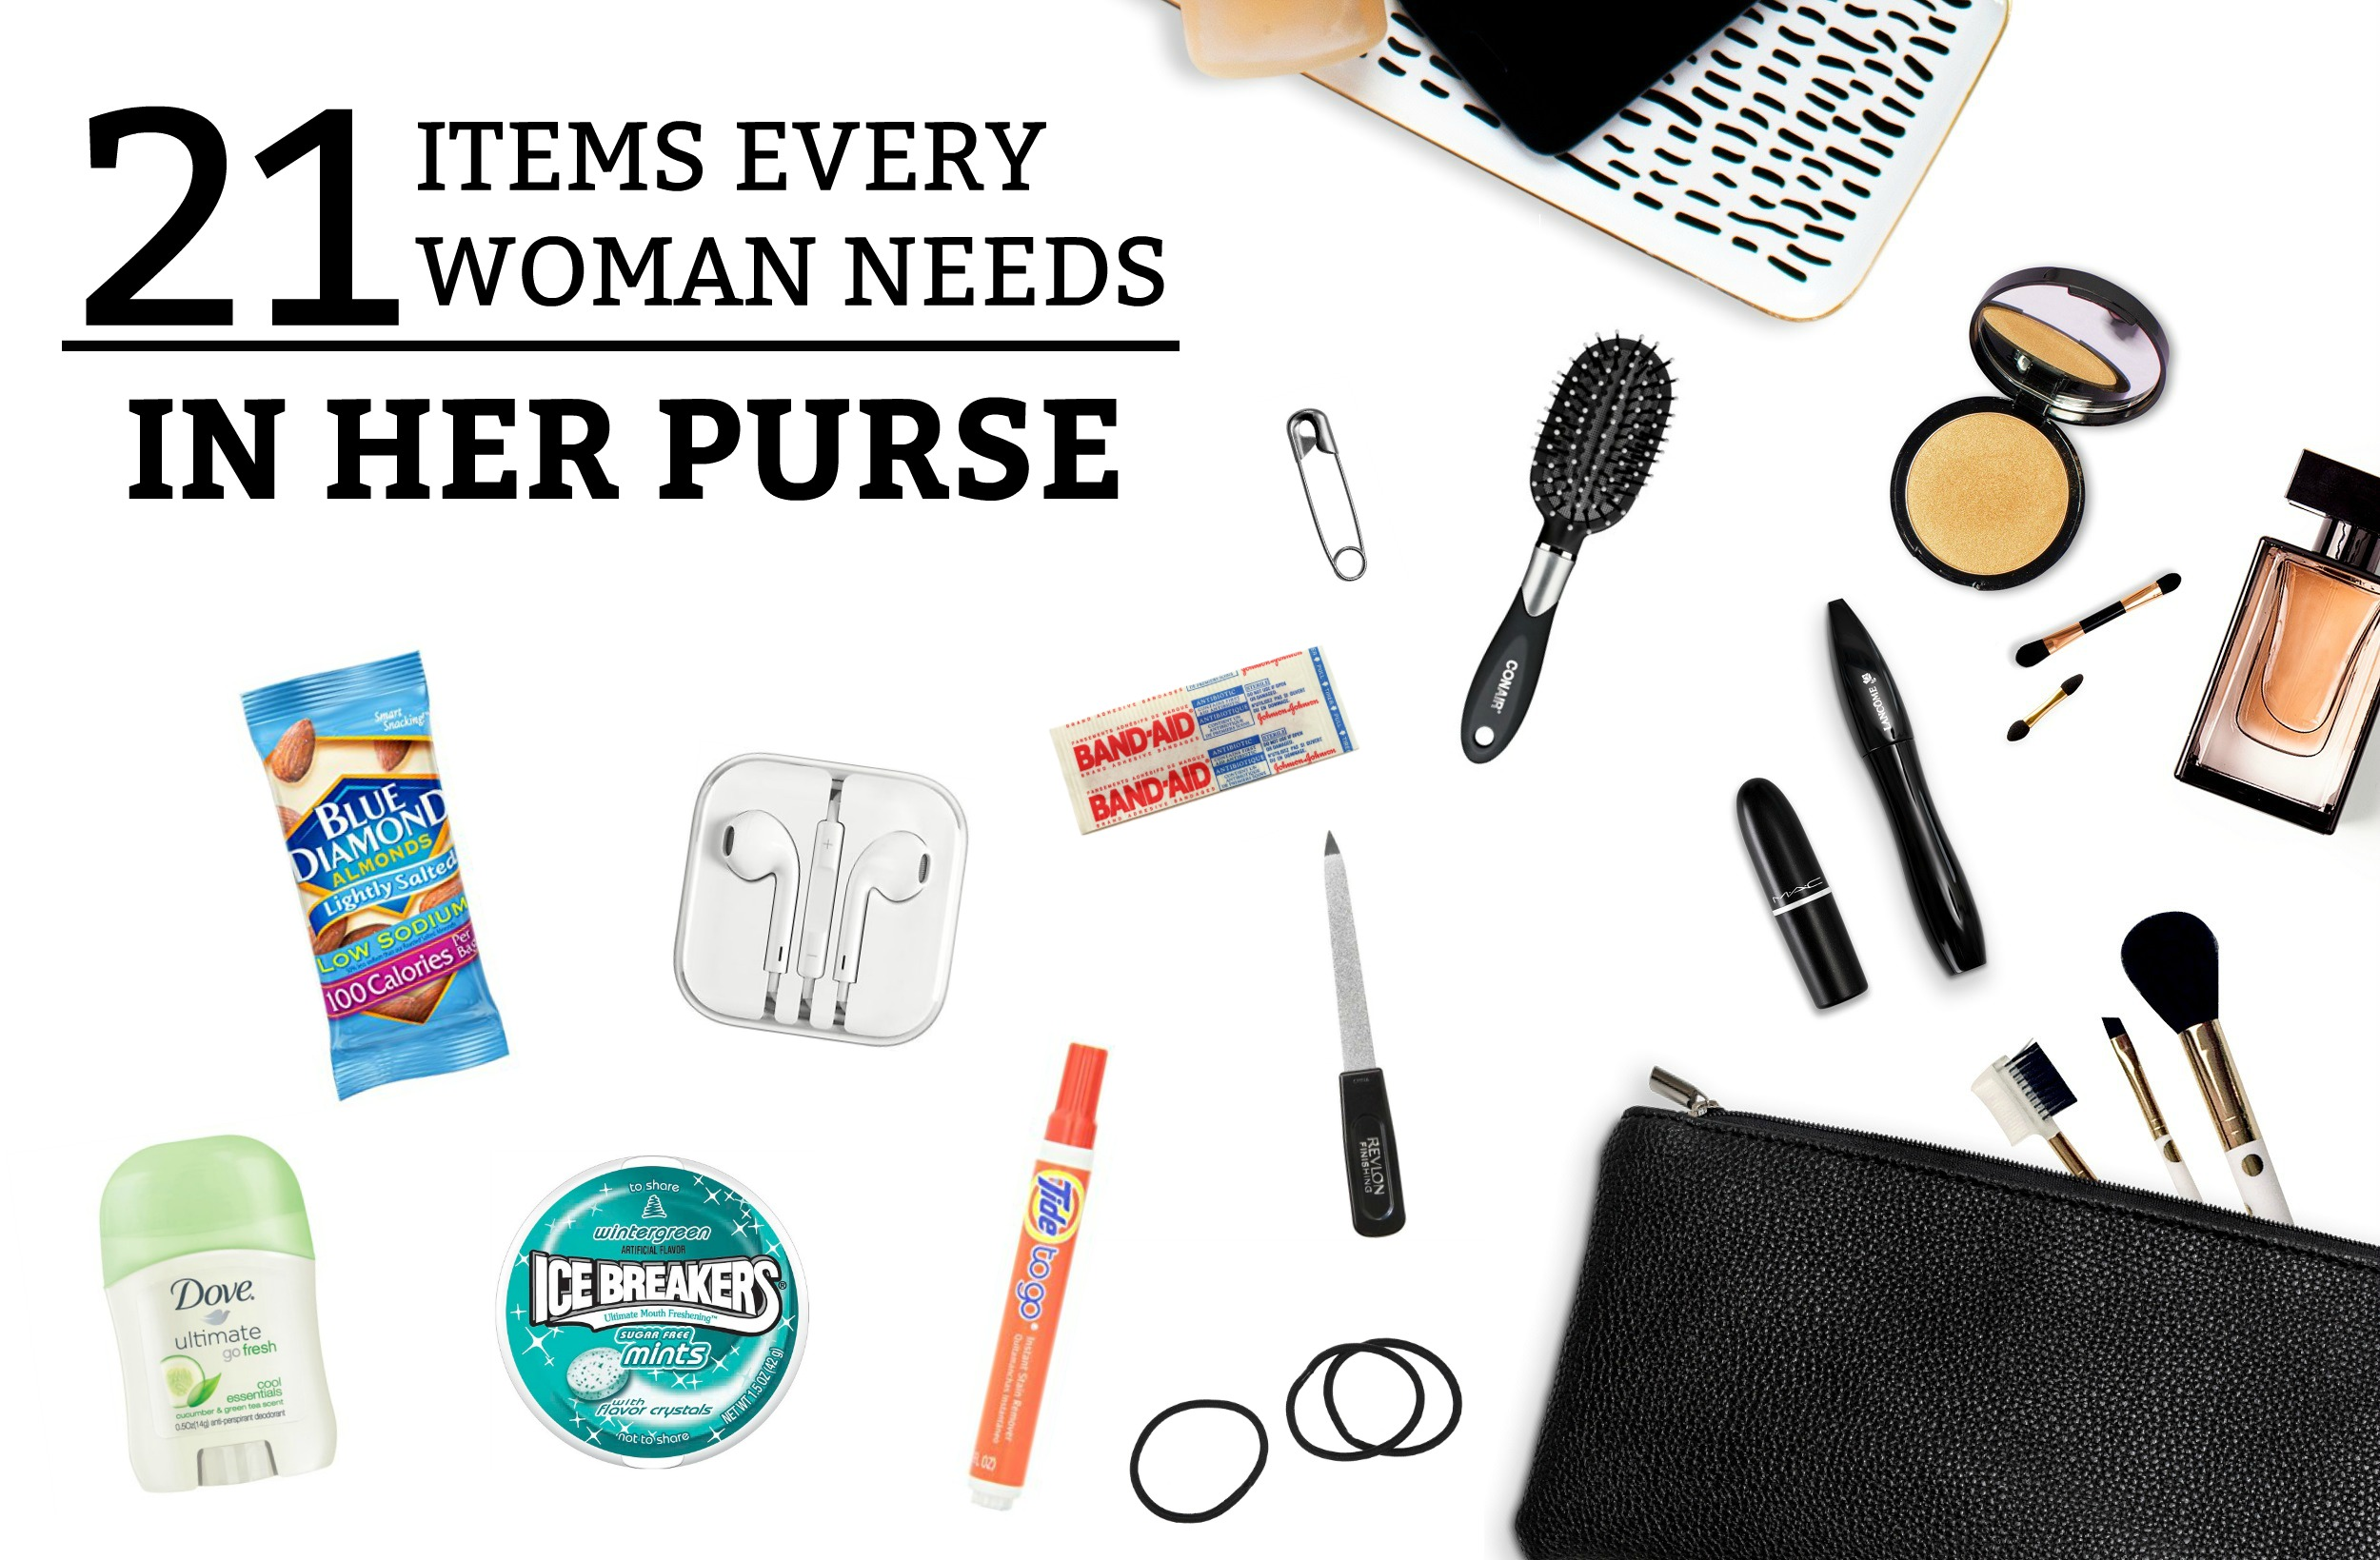 21 Items Every Woman Needs in Her Purse - a practical guide to the must-have items every woman needs to carry in her purse! Don't get caught without one of them! www.tradingaverage.com